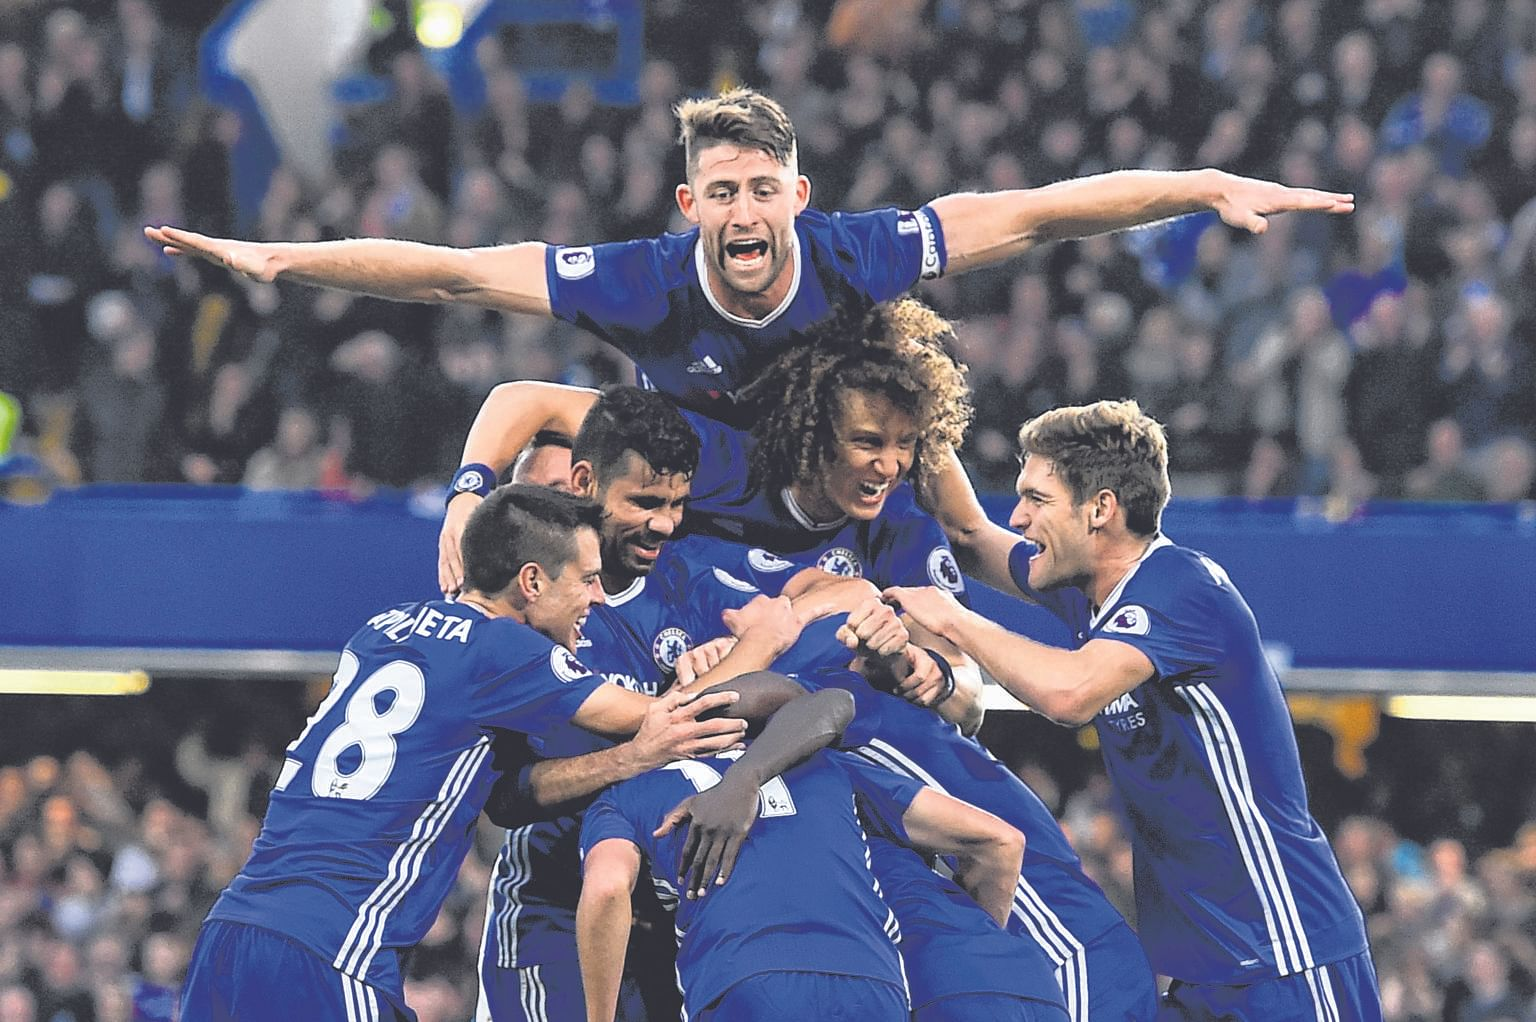 Chelsea's switch to a back three, along with a few personnel changes, have given them a fluency evinced by five wins on the trot.